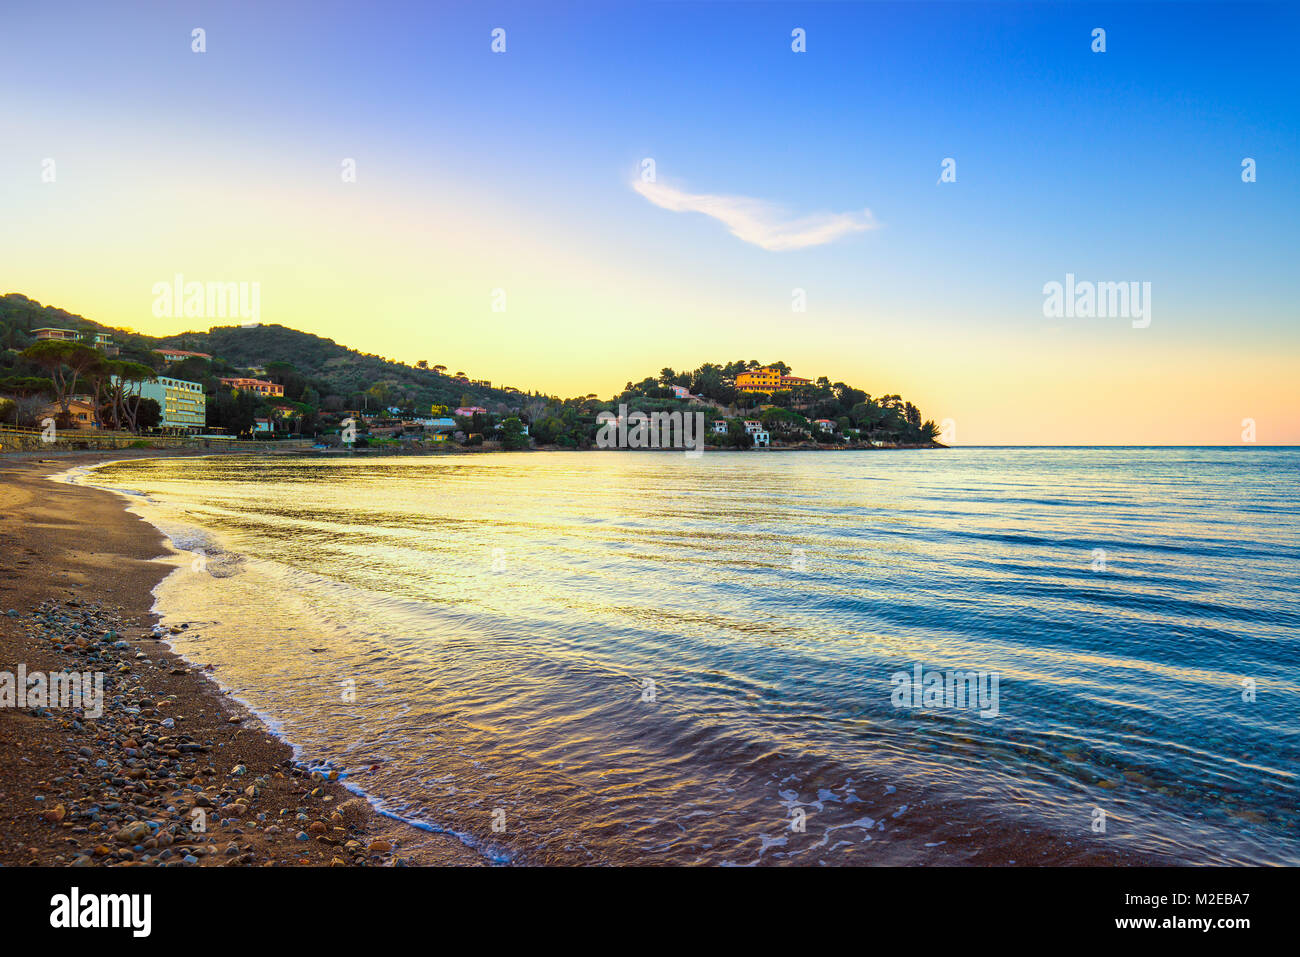 Porto Santo Stefano, headland and bay beach at sunset in Monte Argentario, Maremma Tuscany, Italy - Stock Image